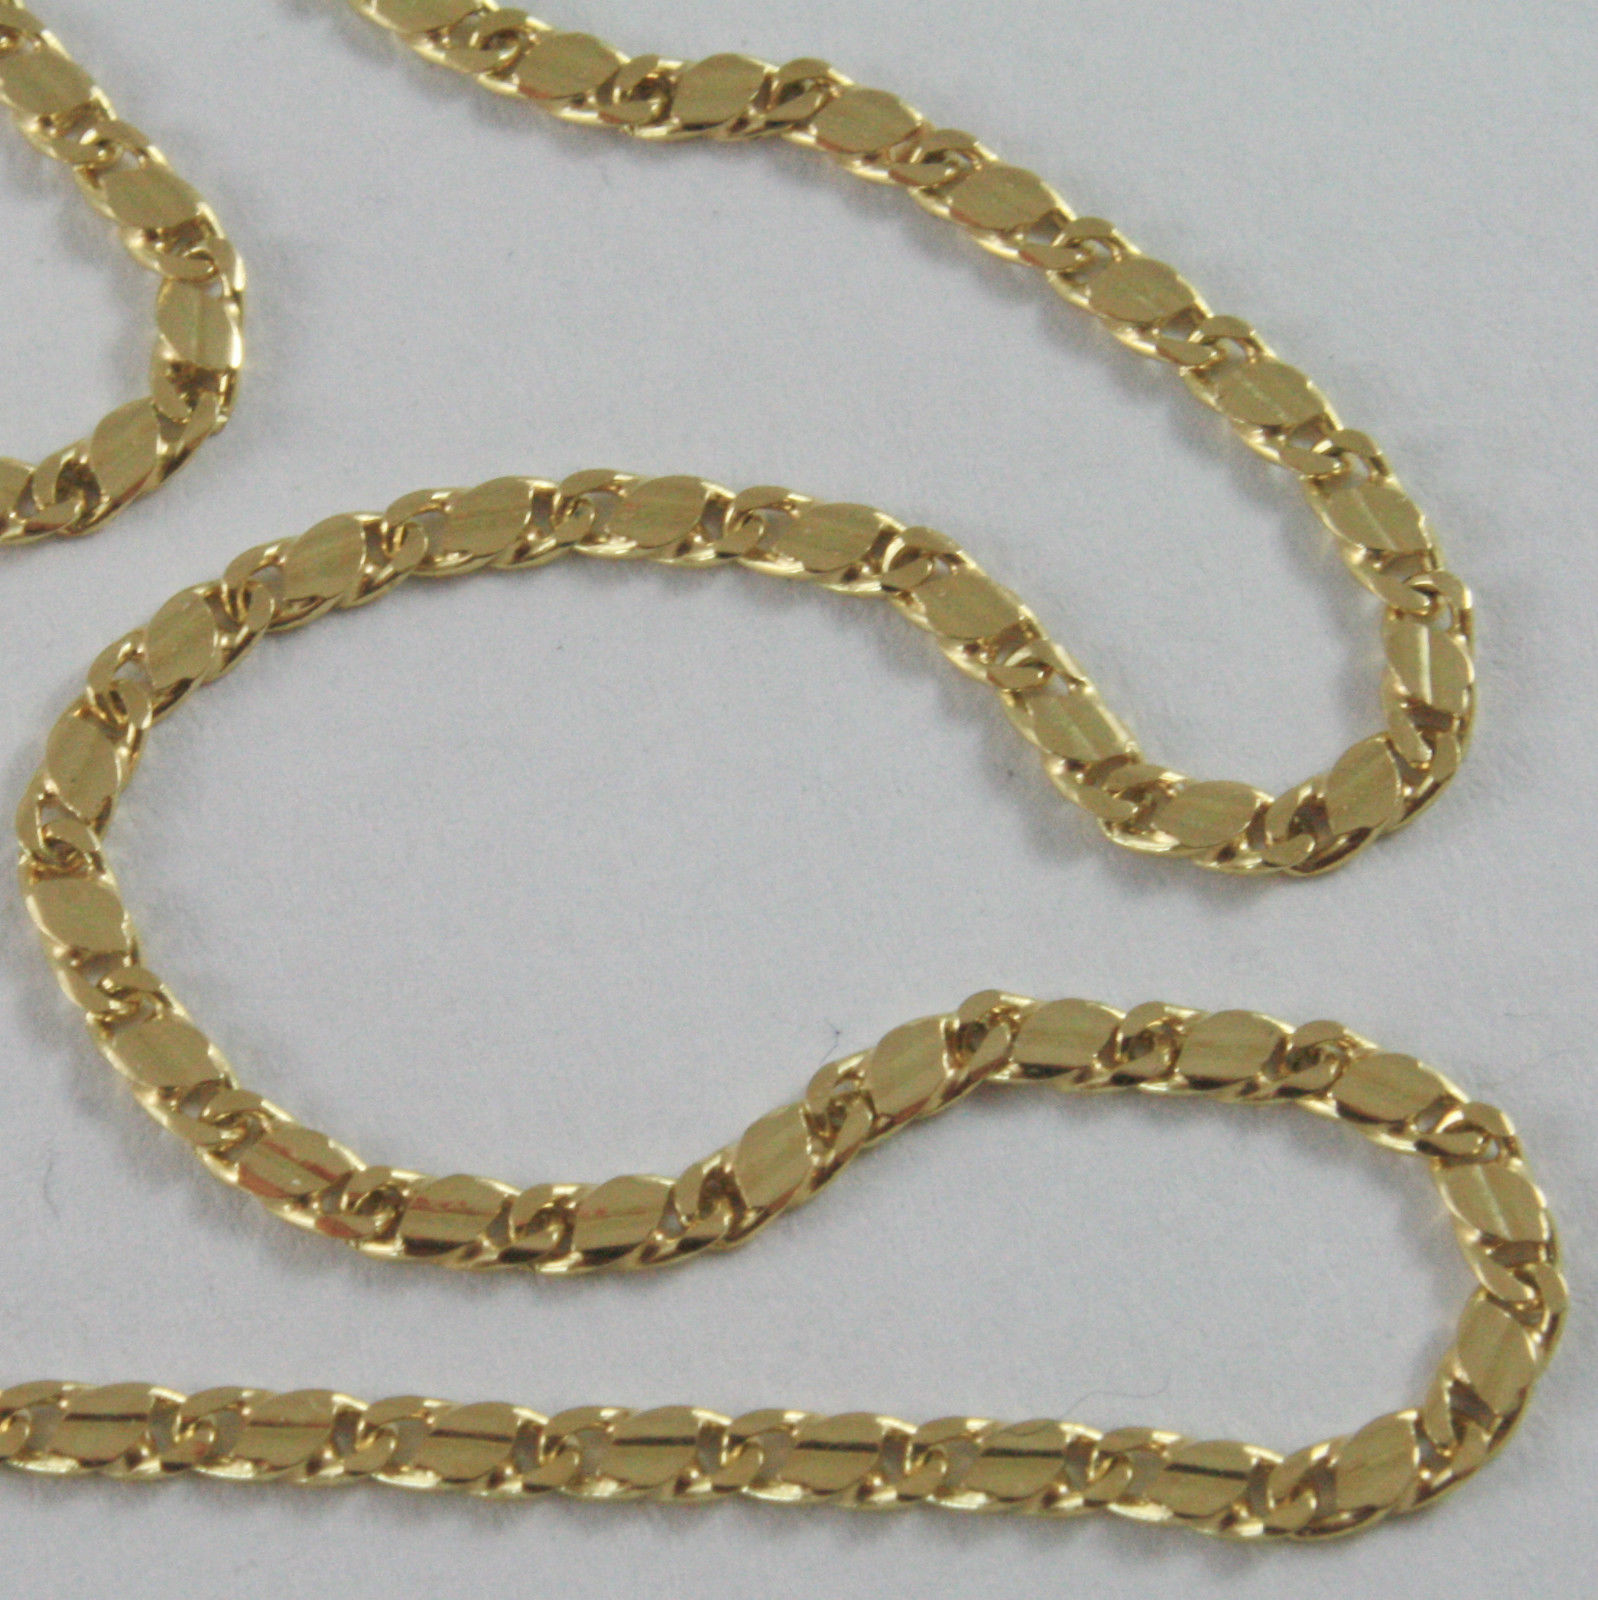 18K YELLOW GOLD CHAIN, ONDULATE FLAT MESH, NECKLACE MADE IN ITALY, 18KT SHINY